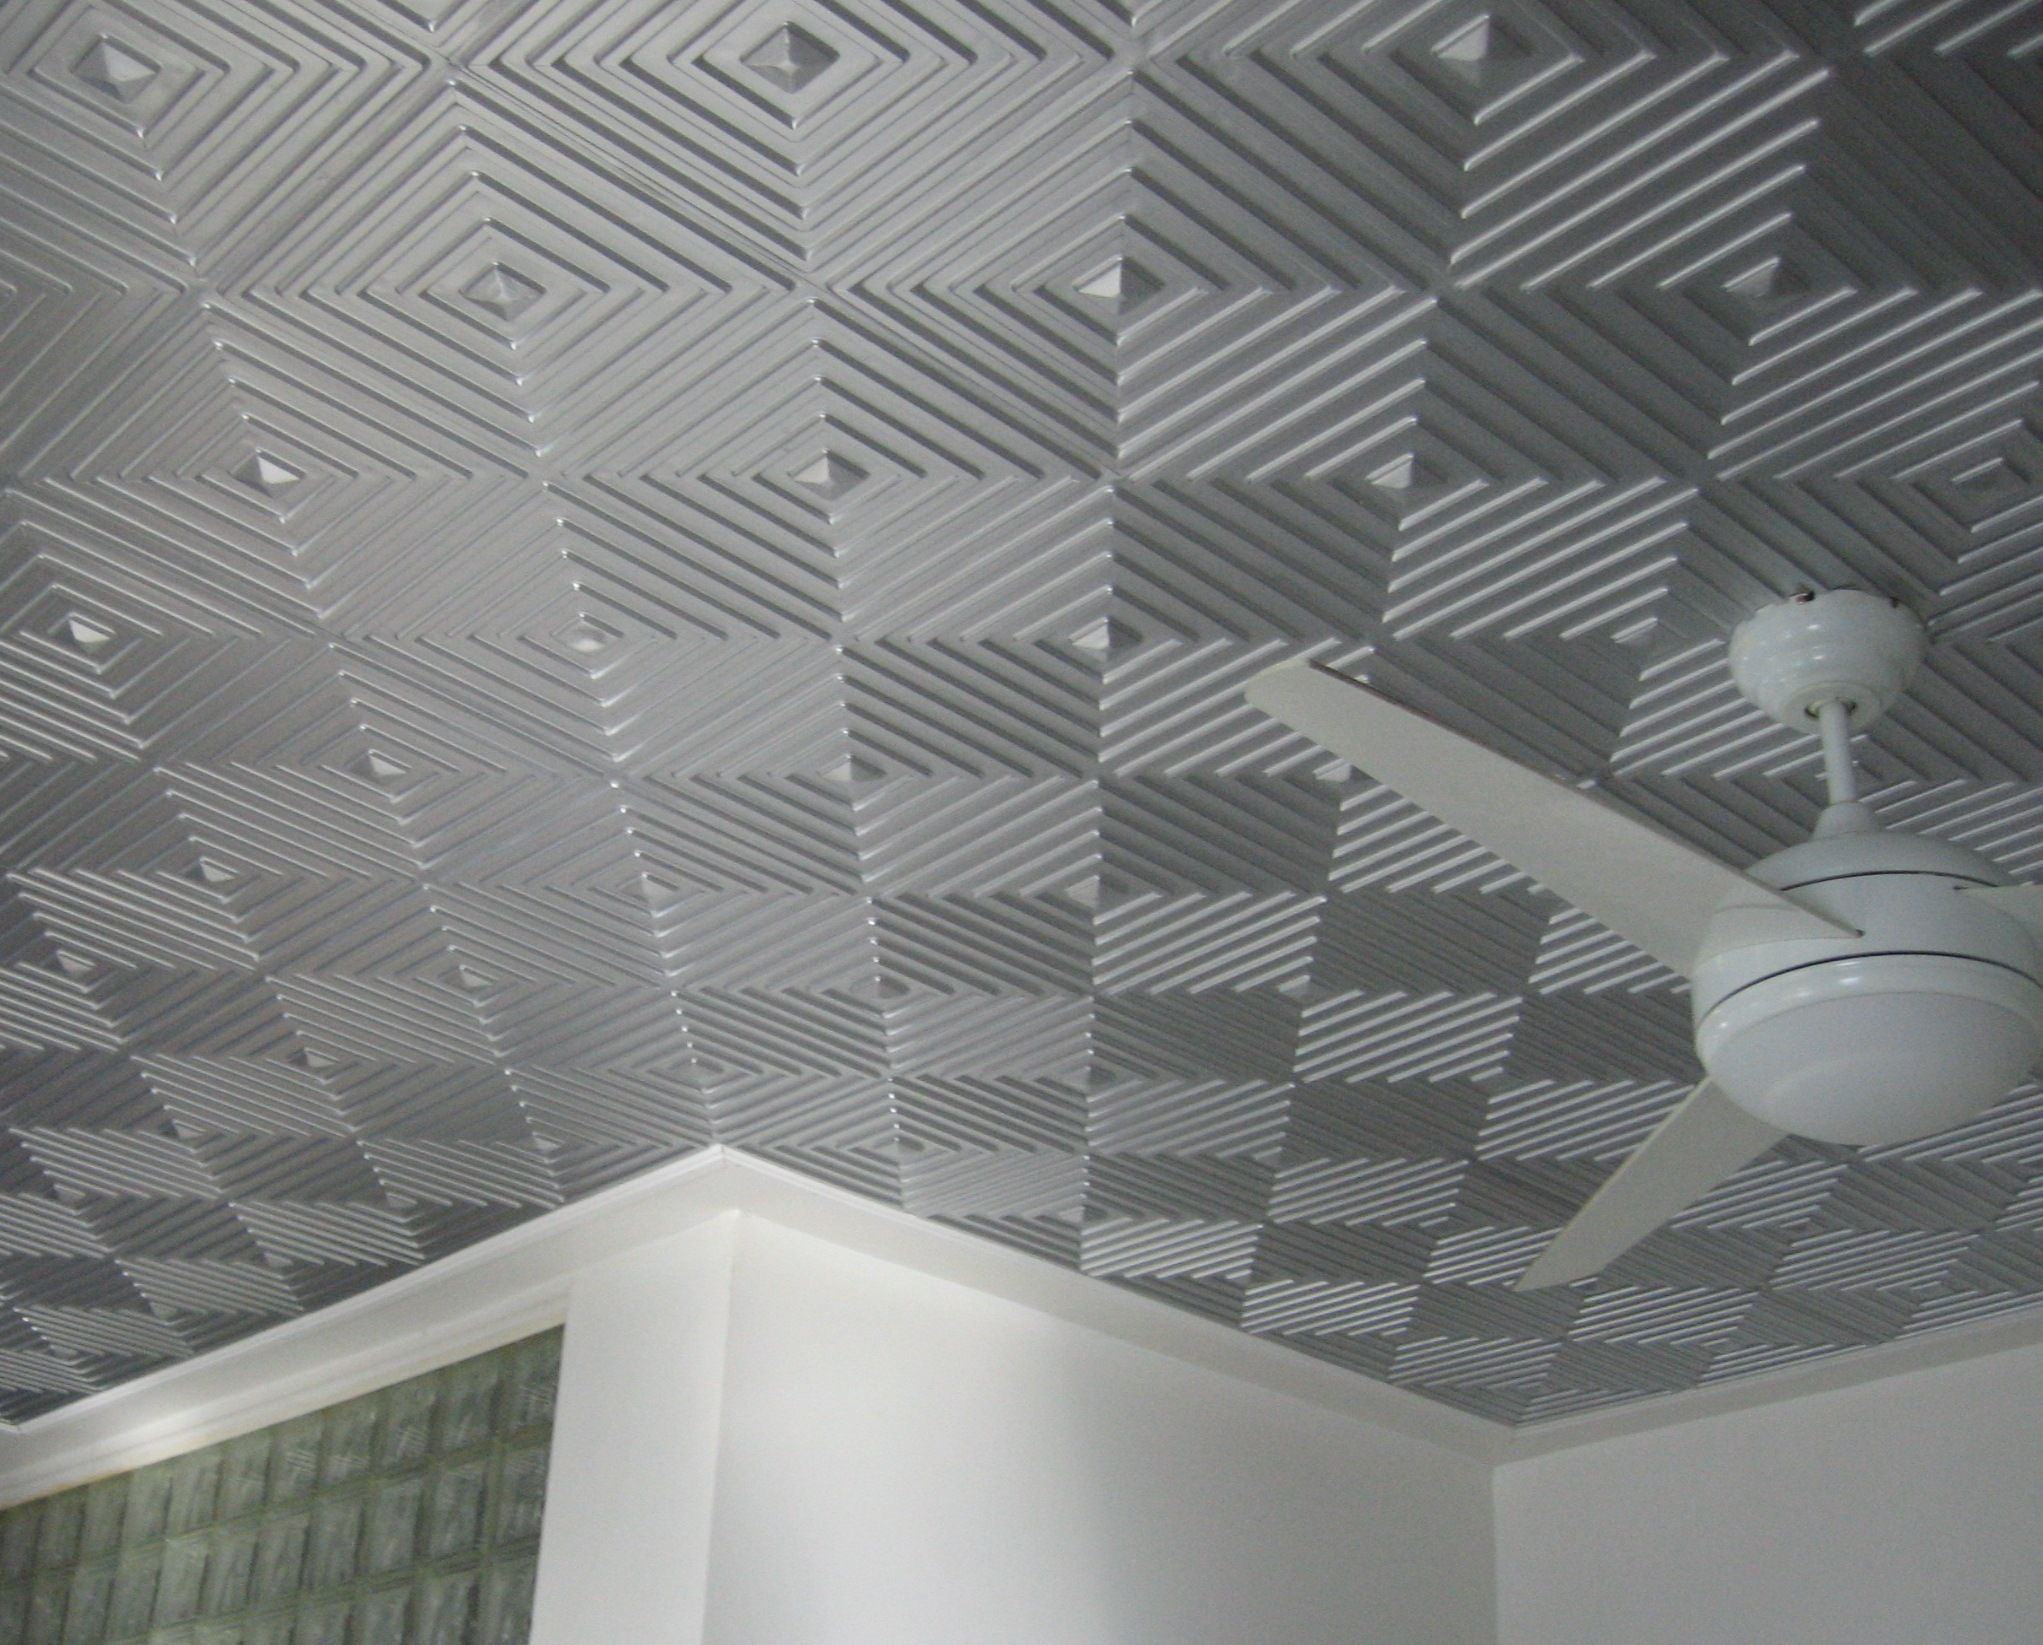 Awesome gray silver ceiling tile idea with cool geometric stripes ceiling designhave a good looking ceiling with elegant faux tin ceiling tiles ideas dailygadgetfo Images